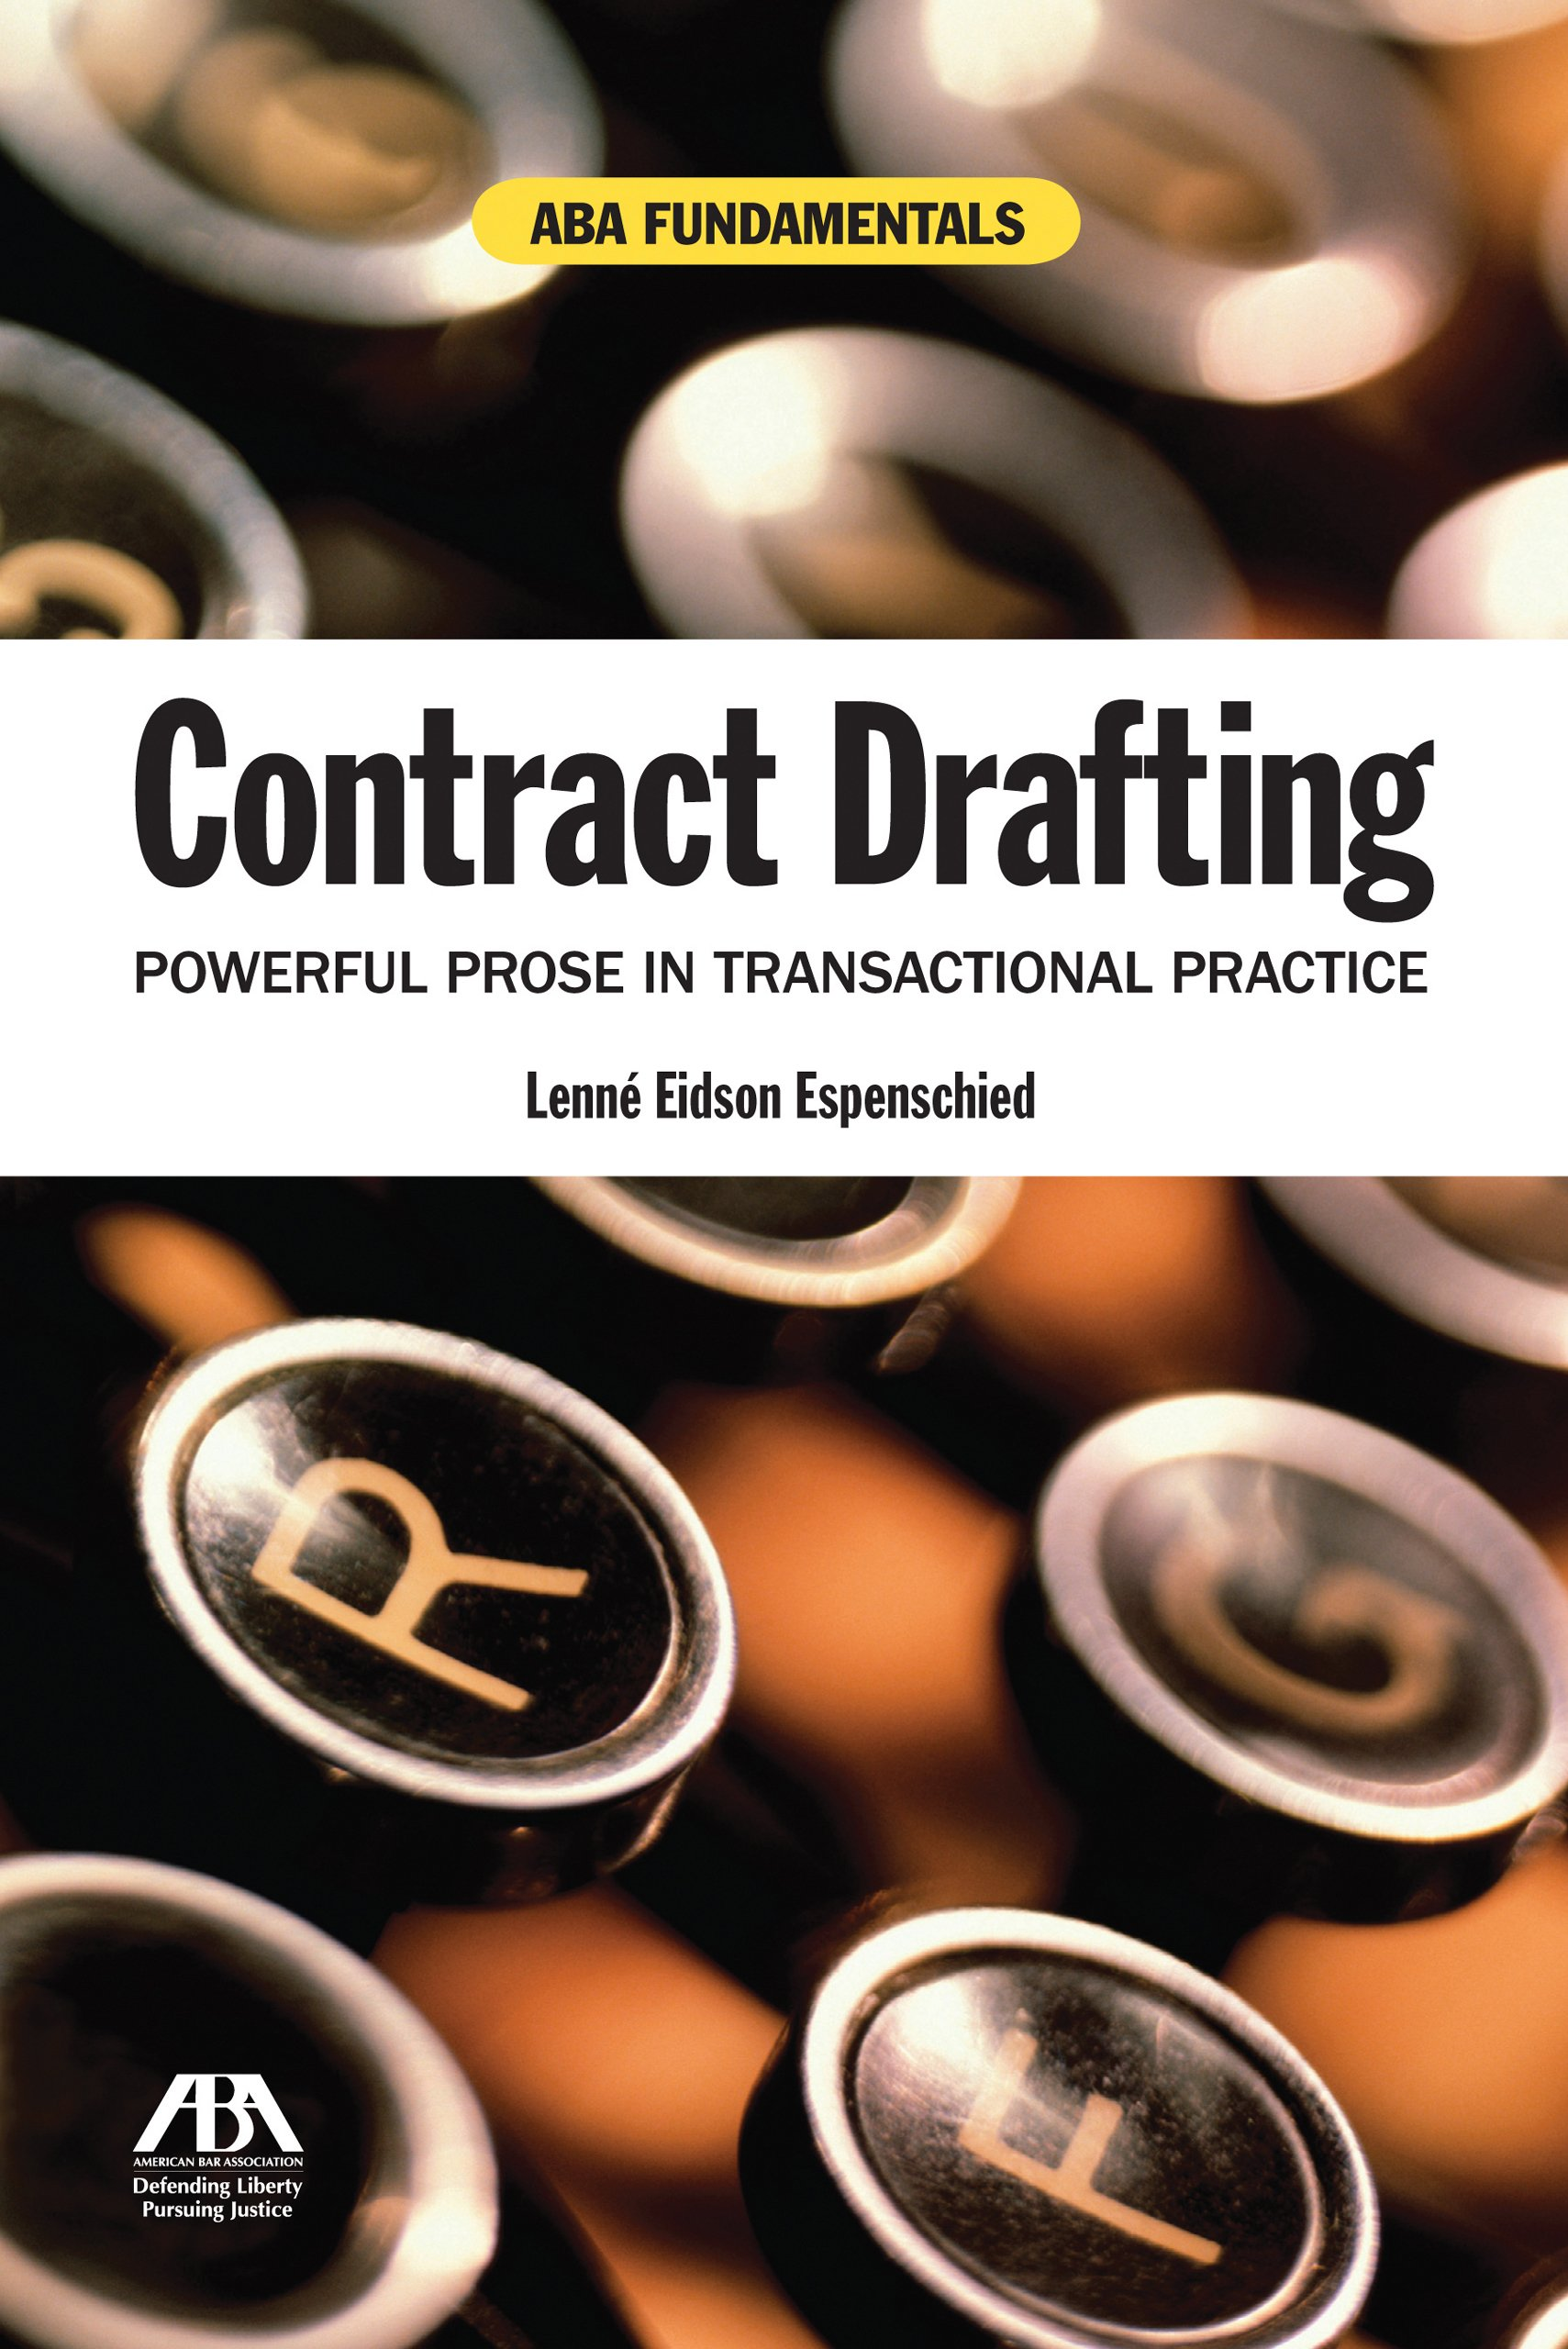 Contract Drafting: Powerful Prose in Transactional Practice (Aba Fundamentals) by American Bar Association